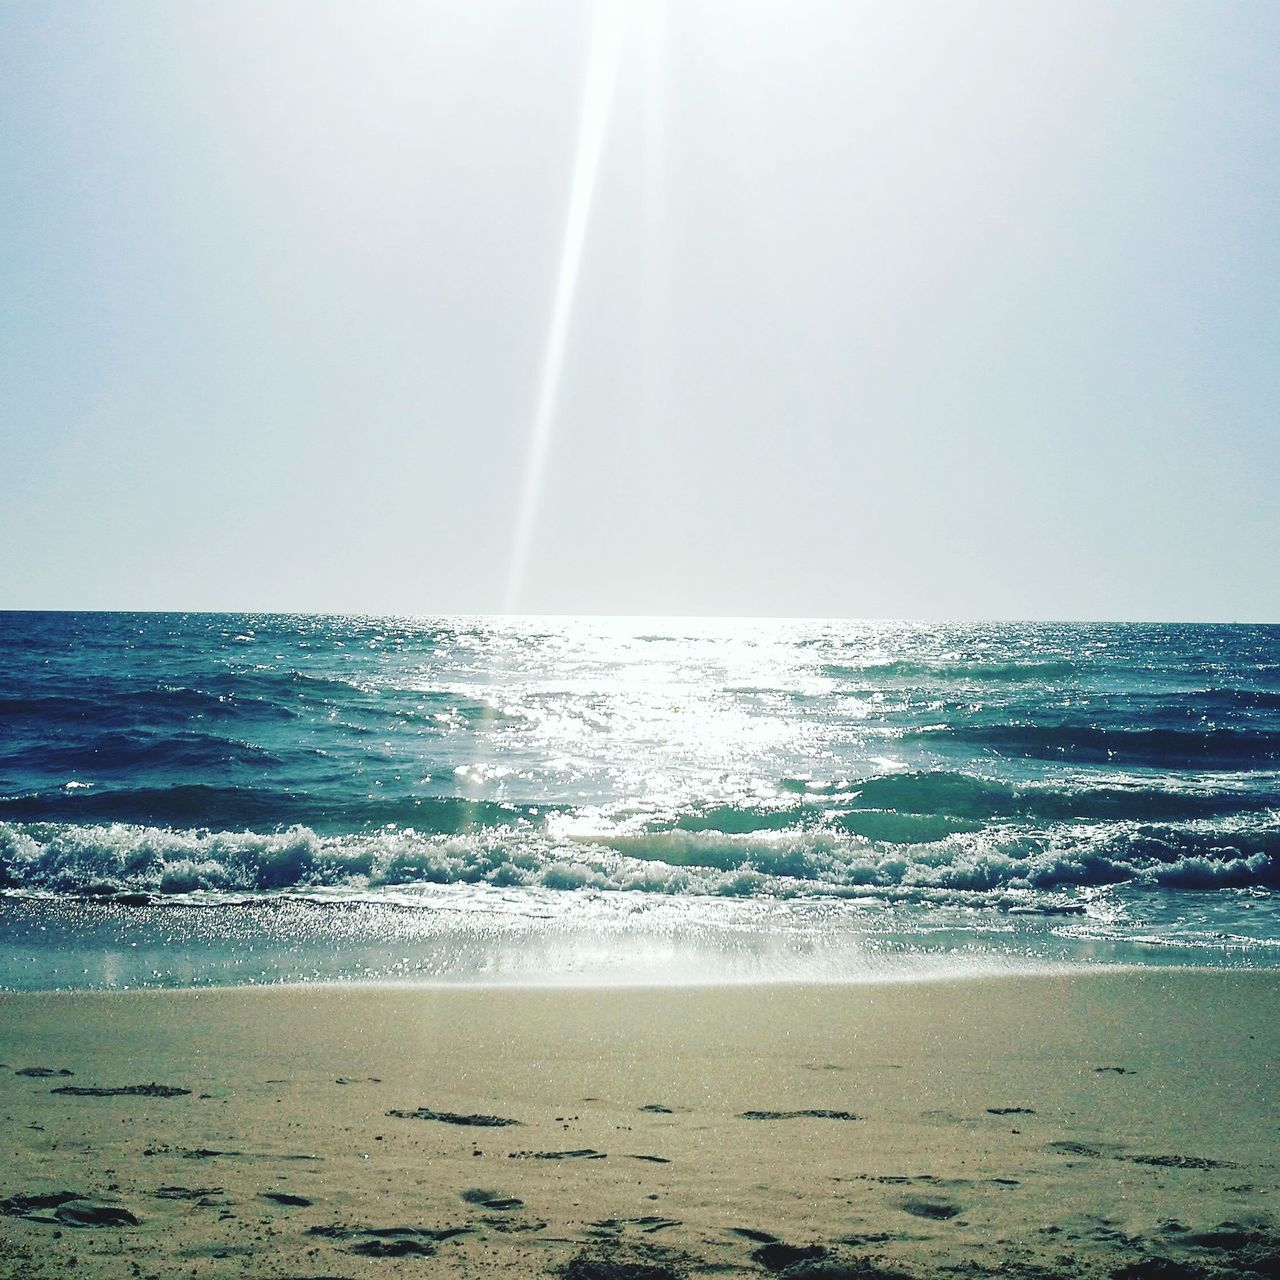 sea, horizon over water, beauty in nature, nature, water, scenics, beach, tranquility, tranquil scene, no people, idyllic, outdoors, sand, day, wave, sunlight, clear sky, sky, vapor trail